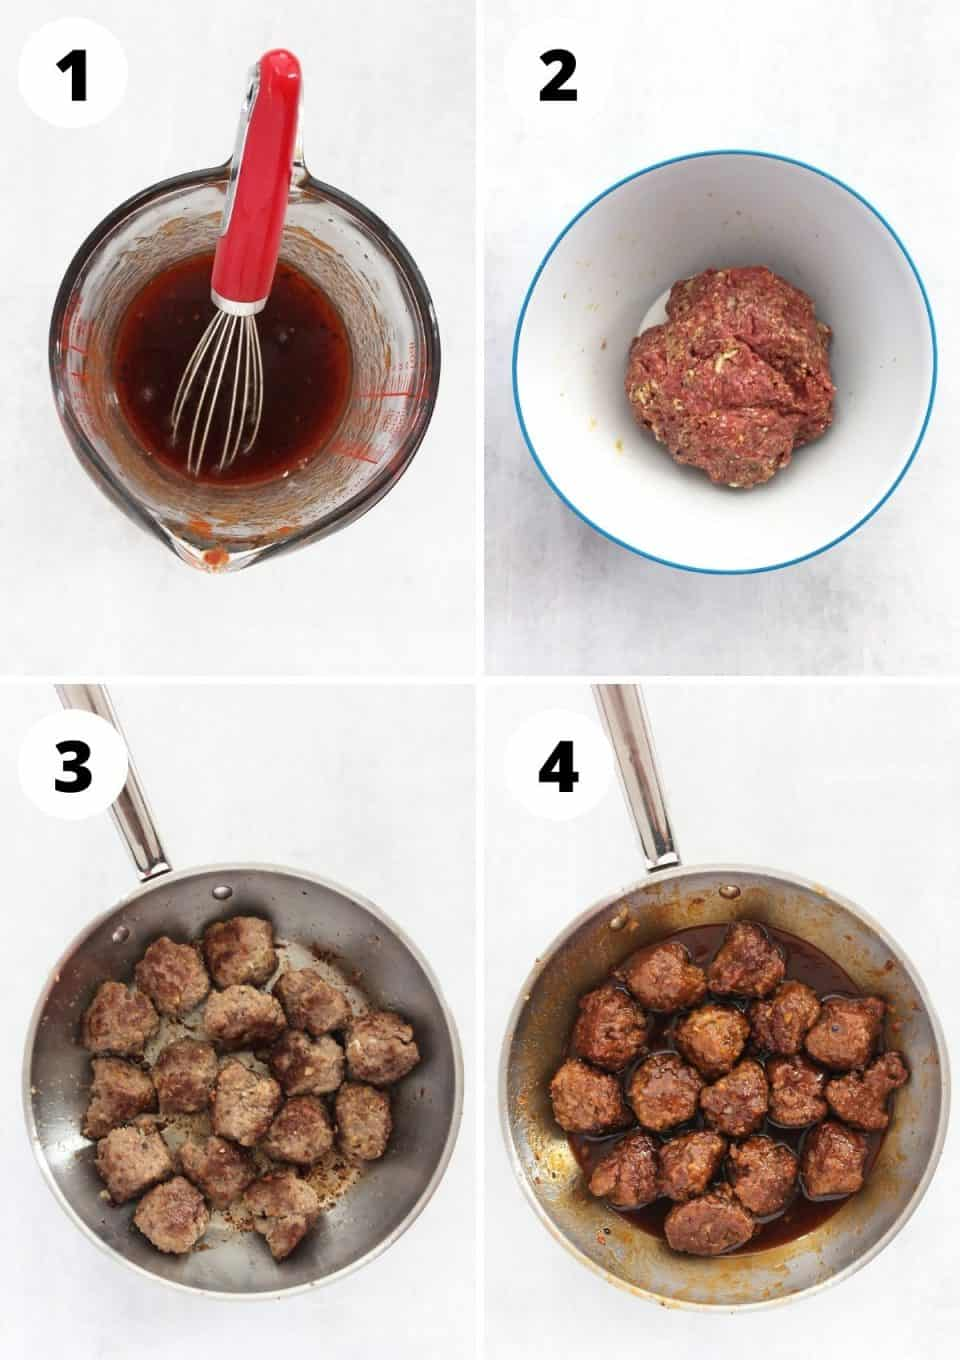 Four step by step photos to show how to make the sauce and the meatballs.